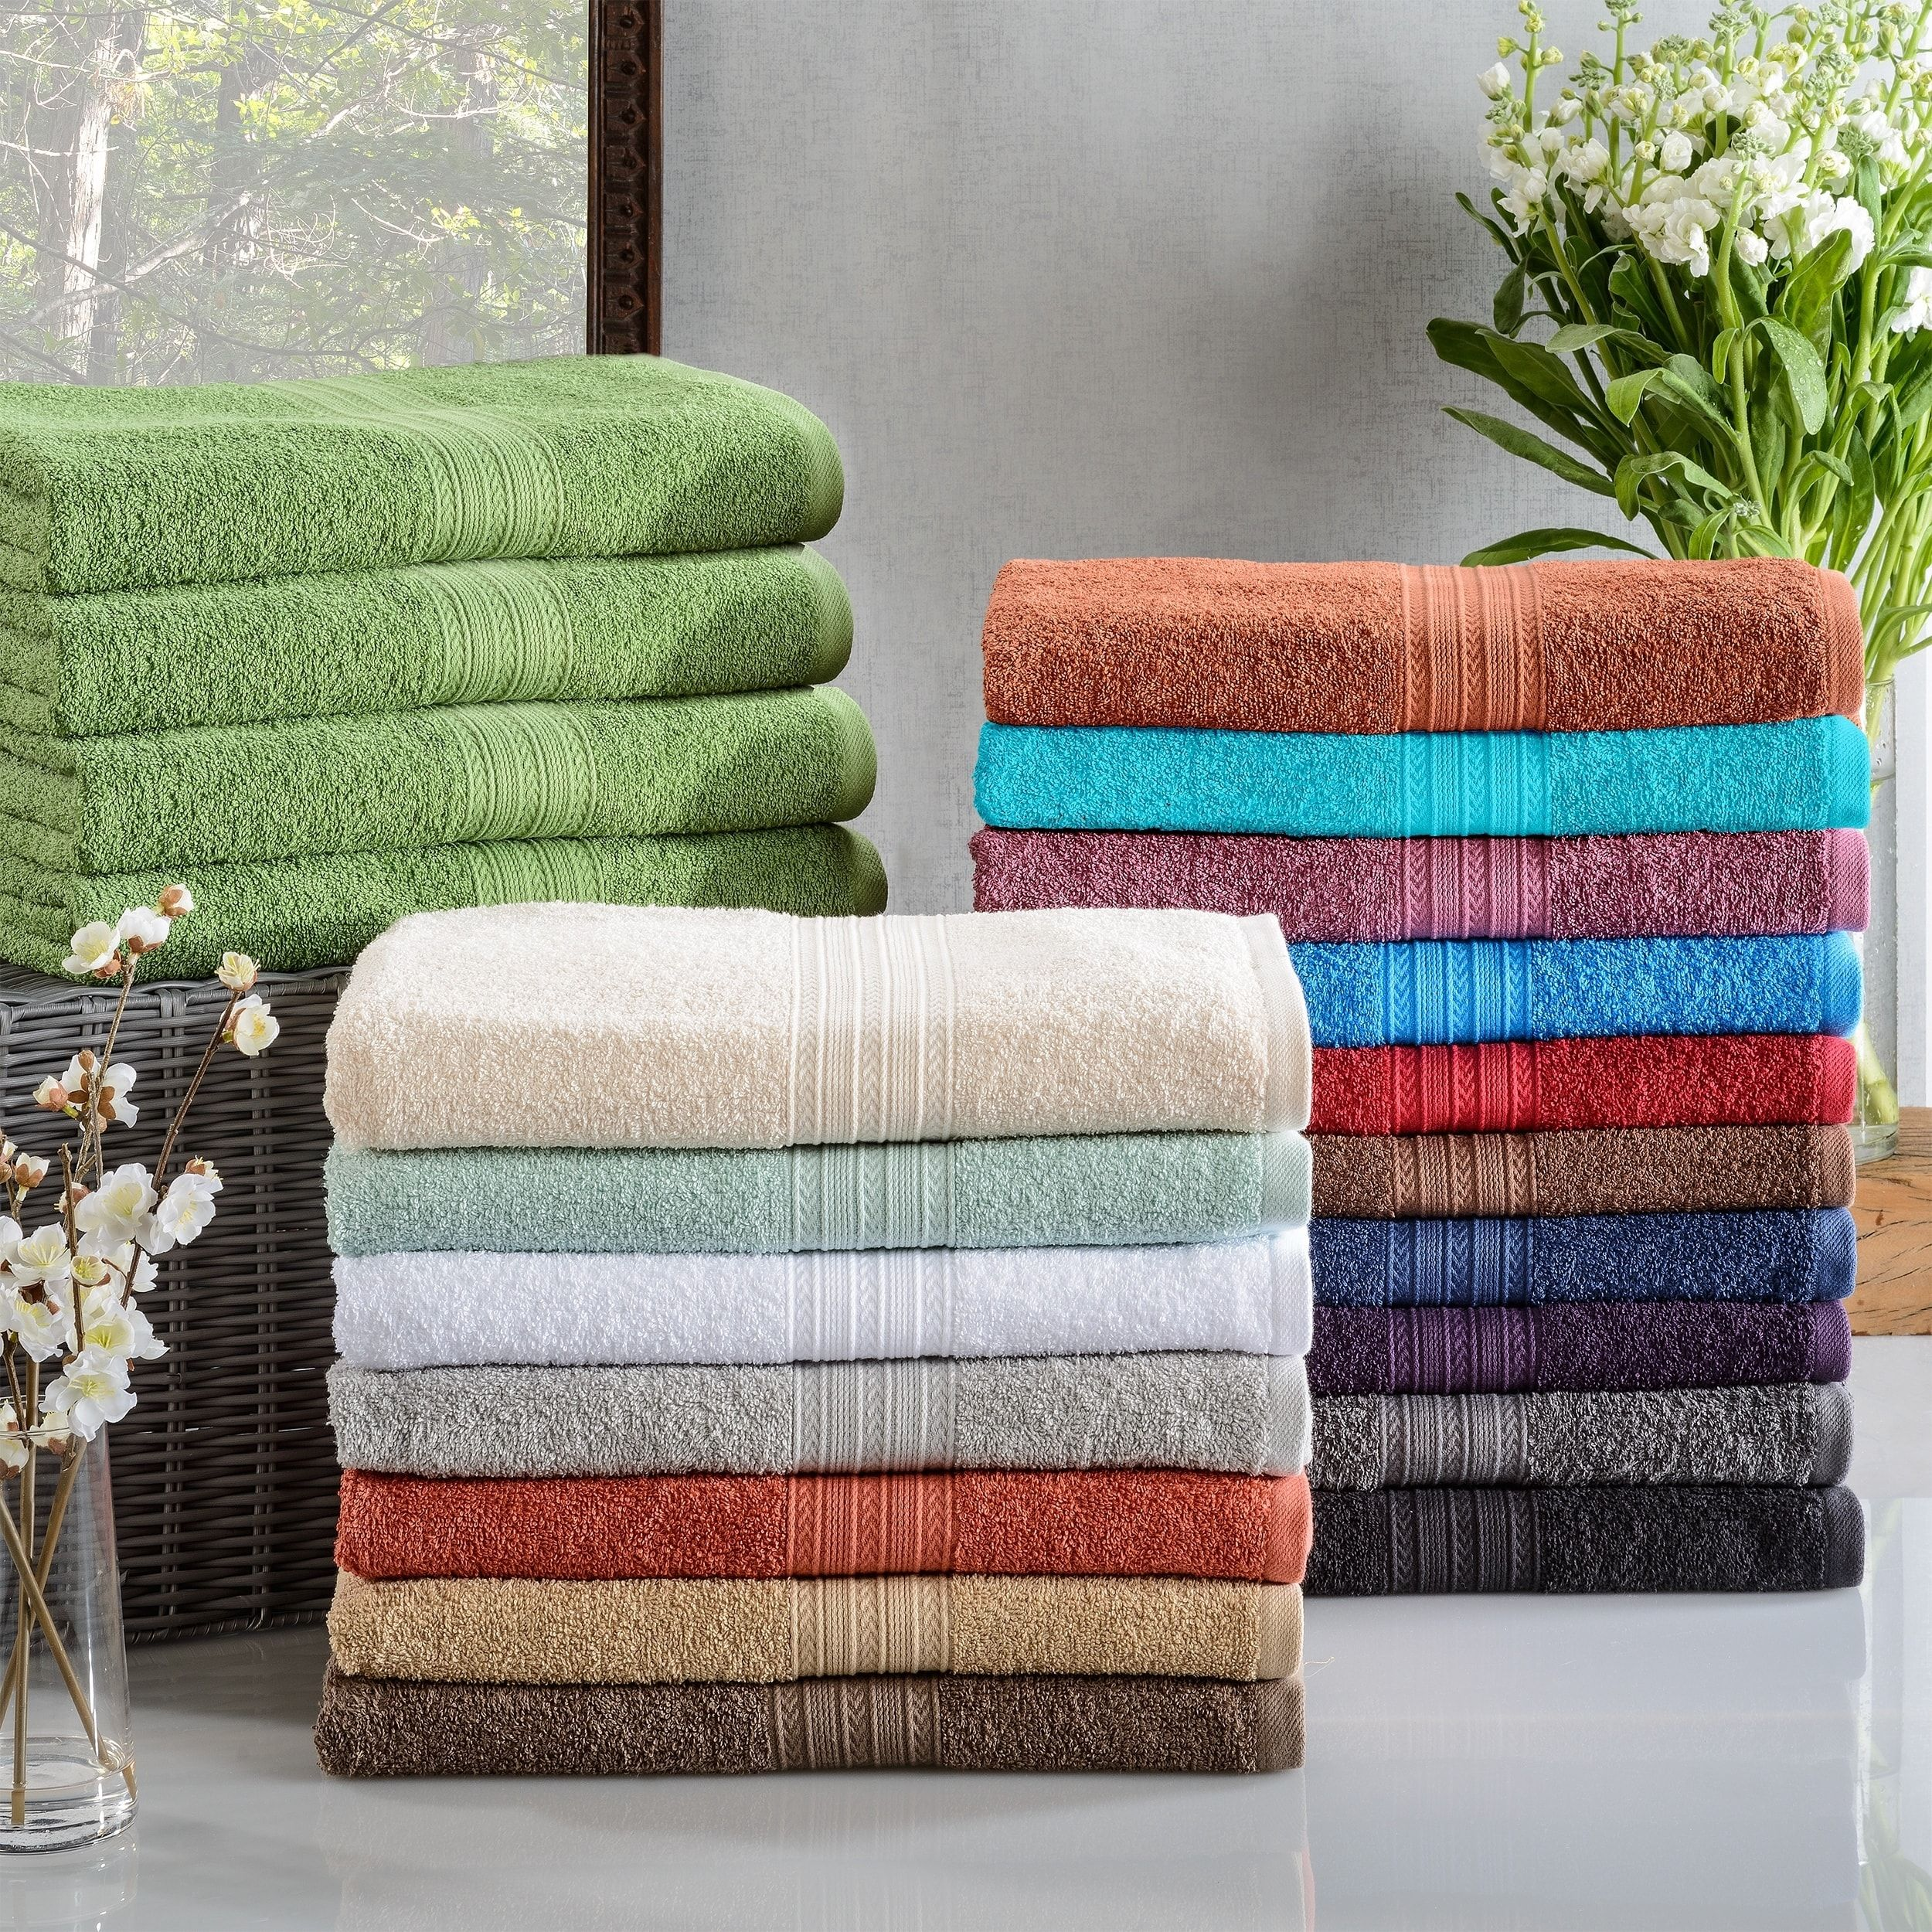 Miranda Haus Eco Friendly Cotton Soft And Absorbent Bath Towel